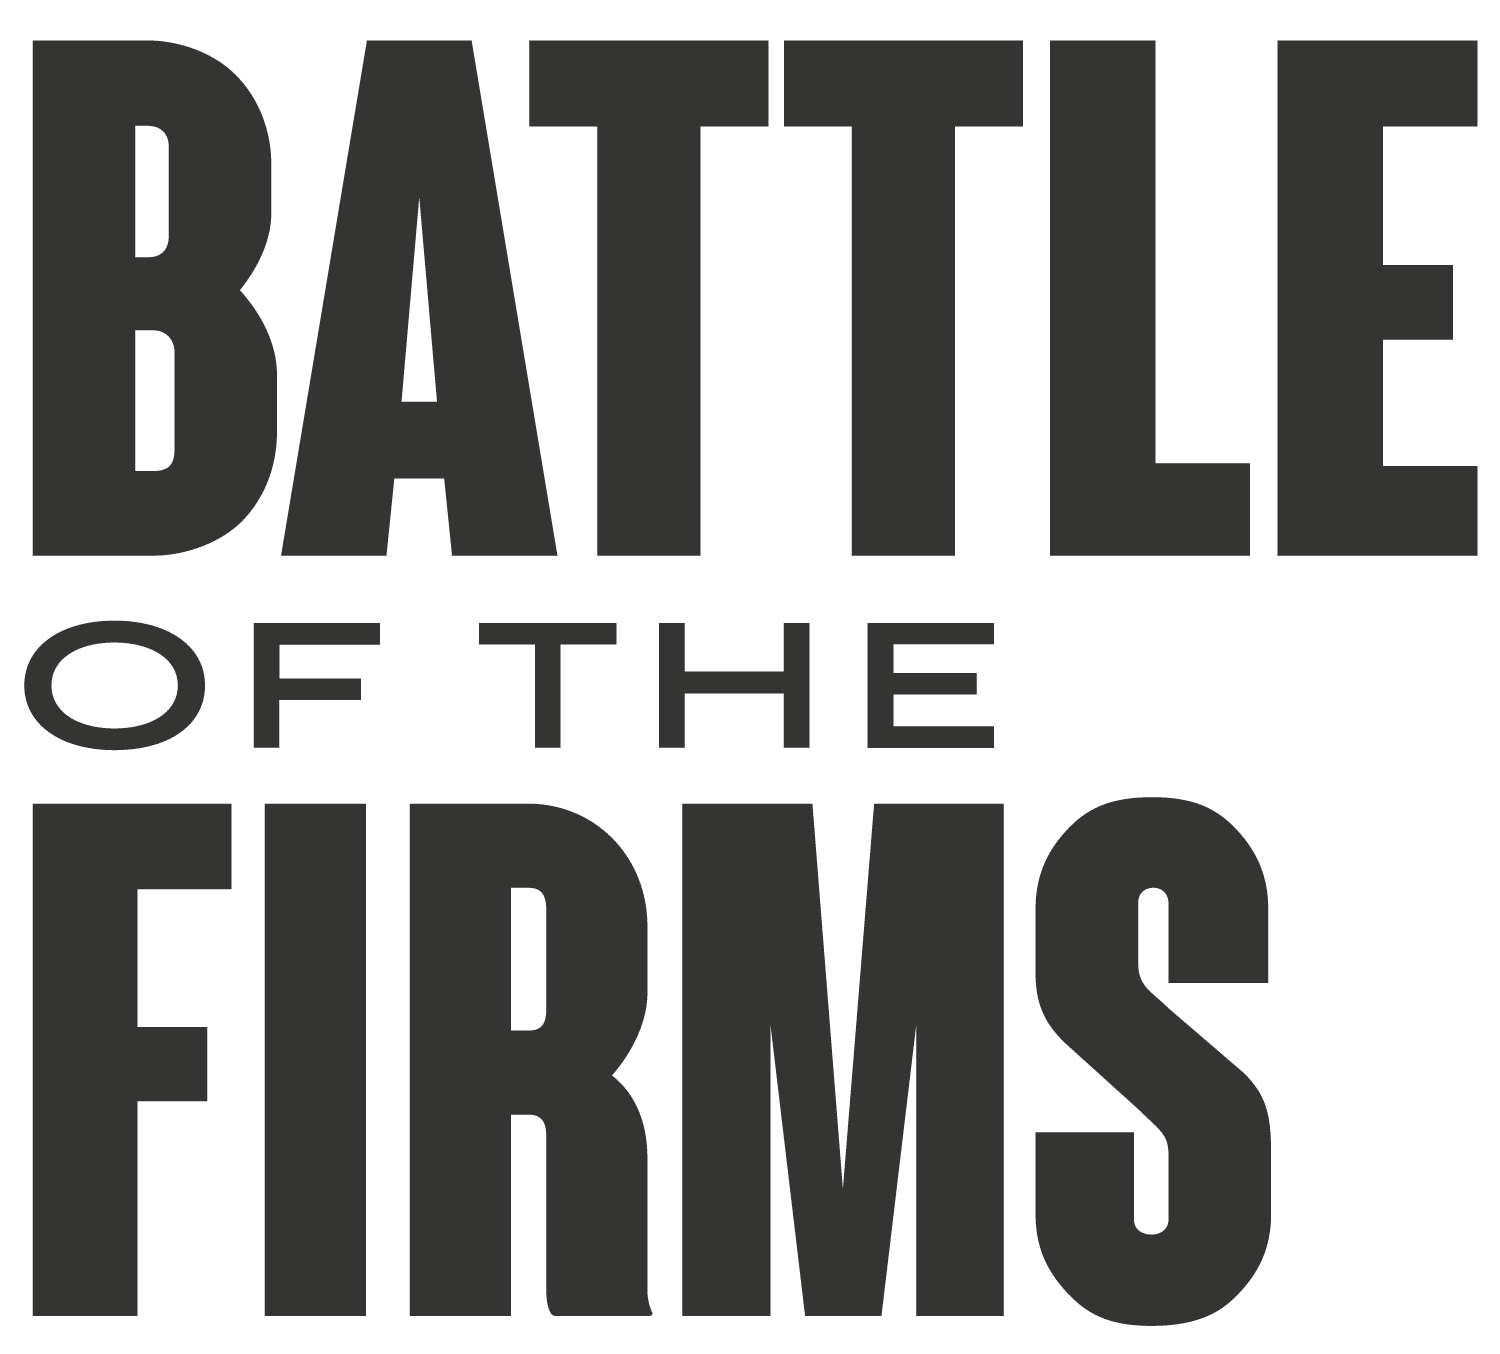 Battle of the Firms